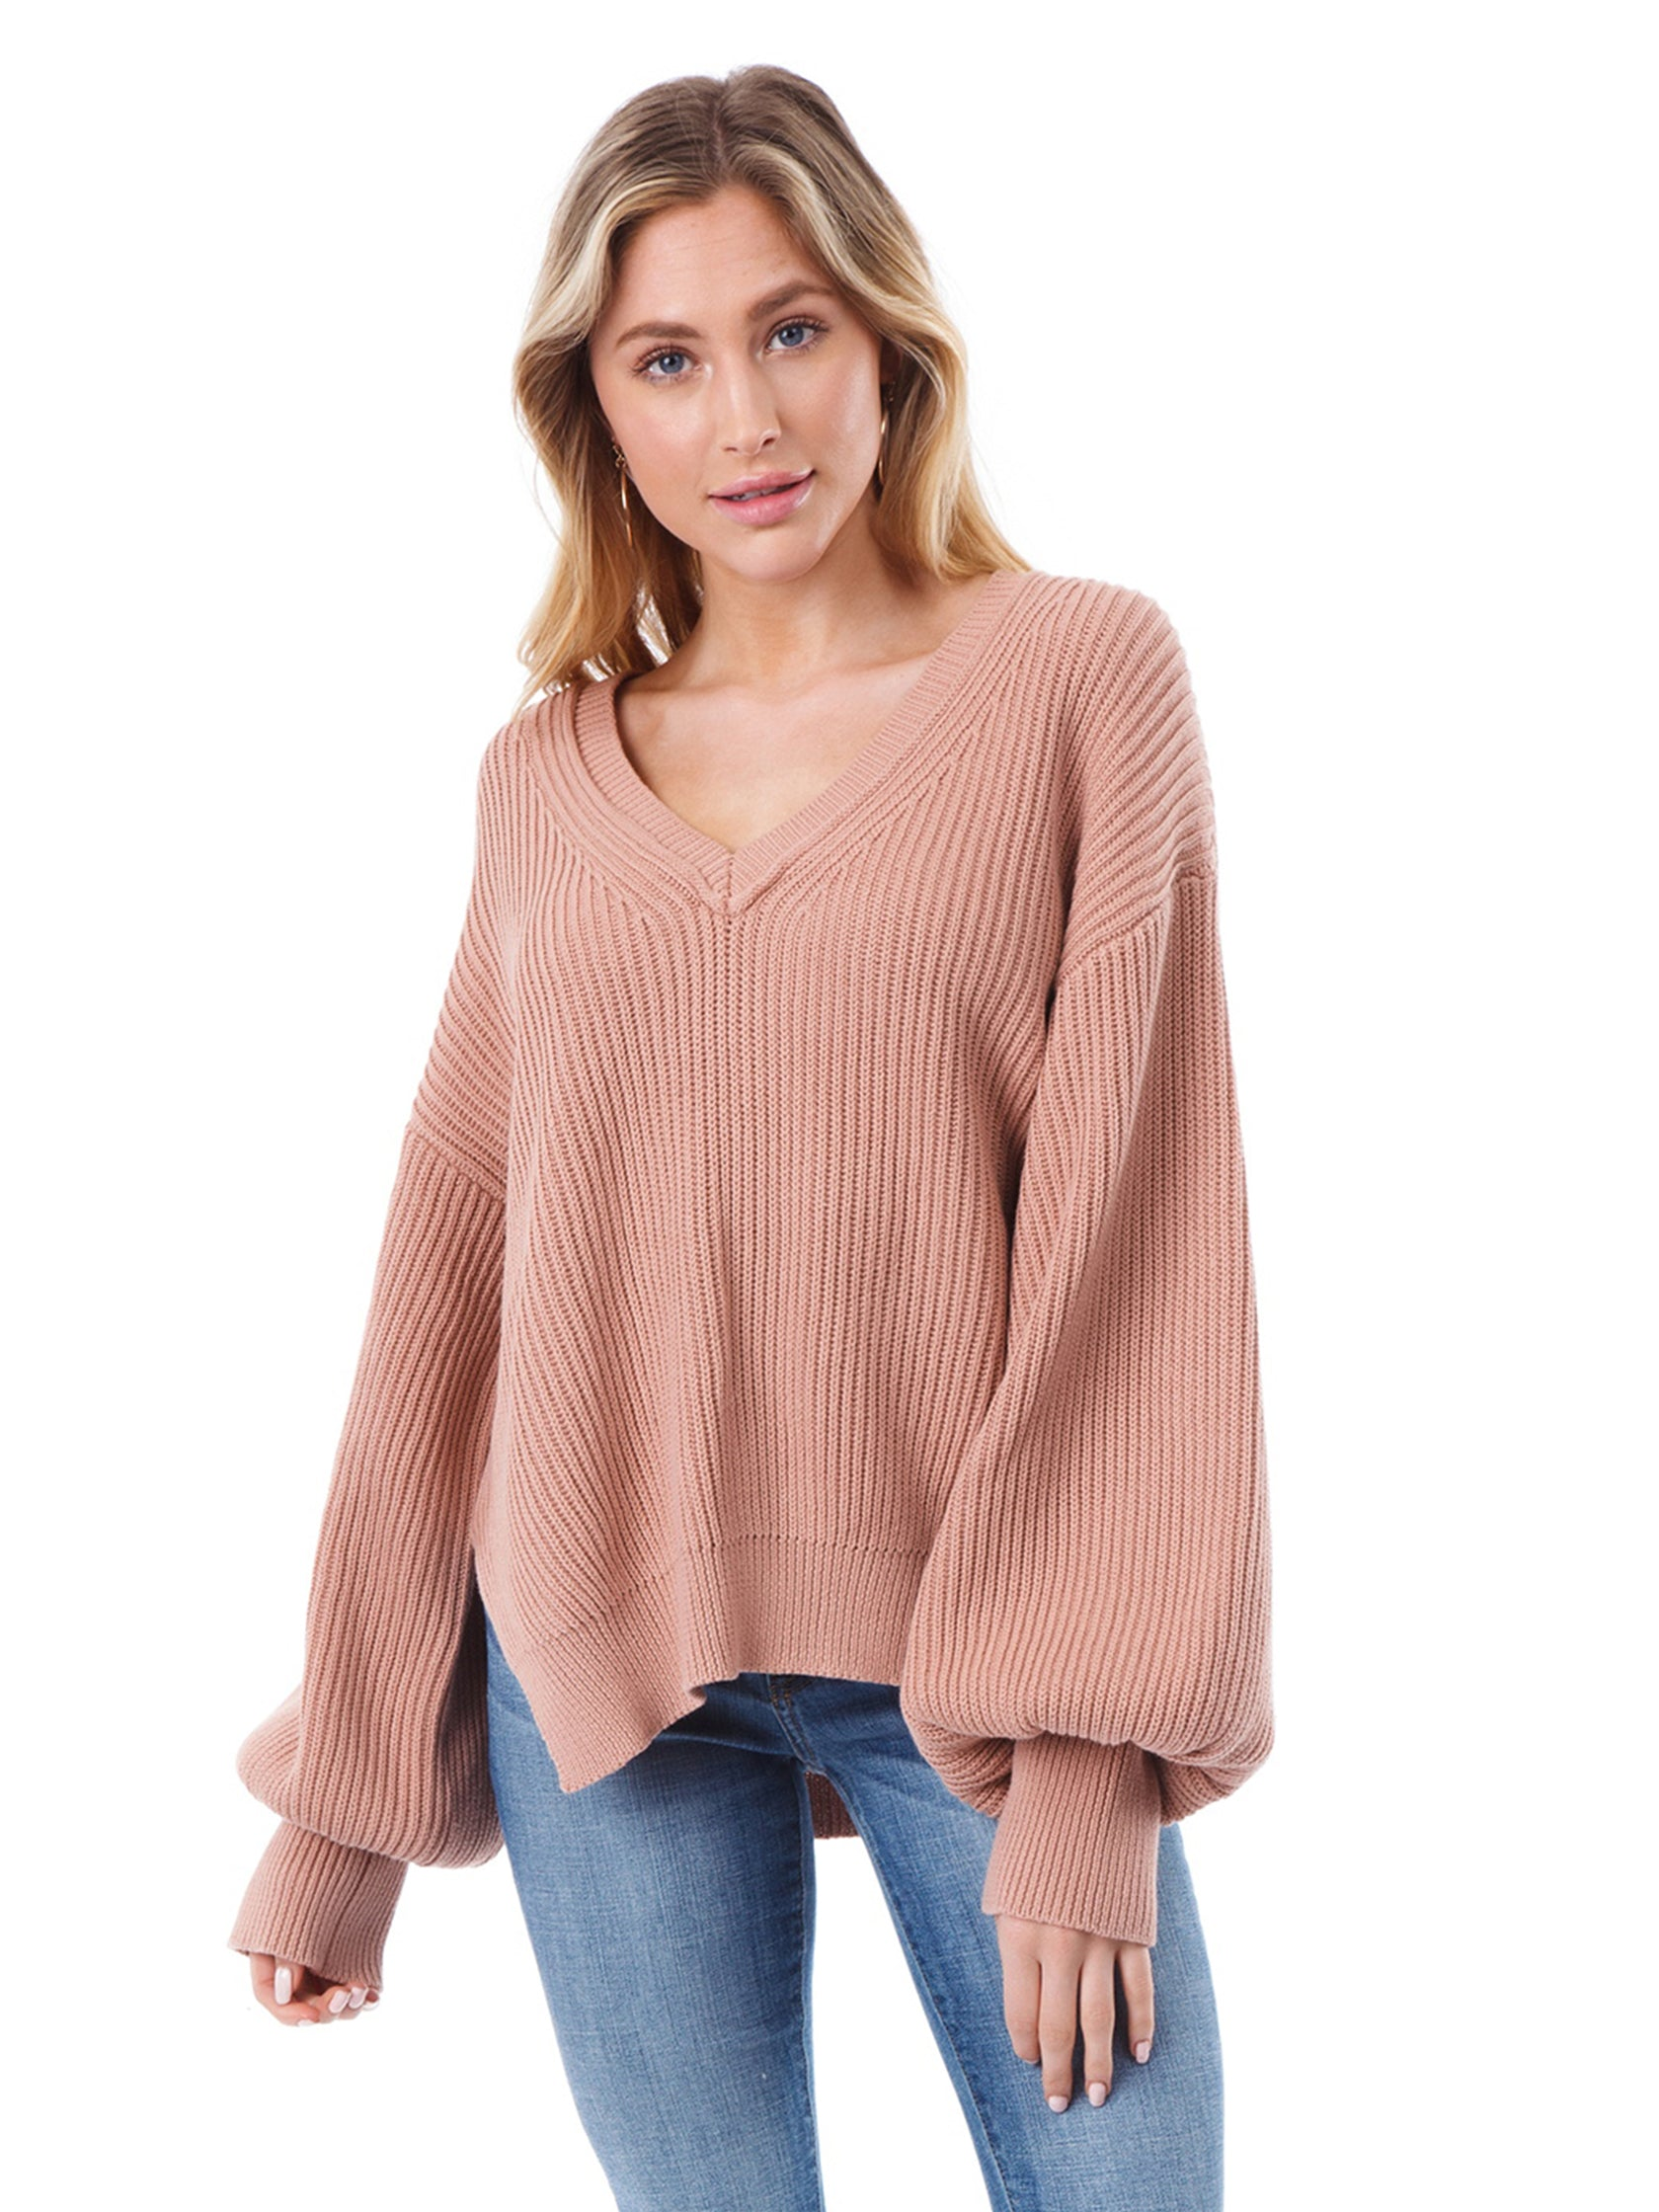 81d063b11f9b51 Girl outfit in a sweater rental from Lush called V Neck Dolman Sweater